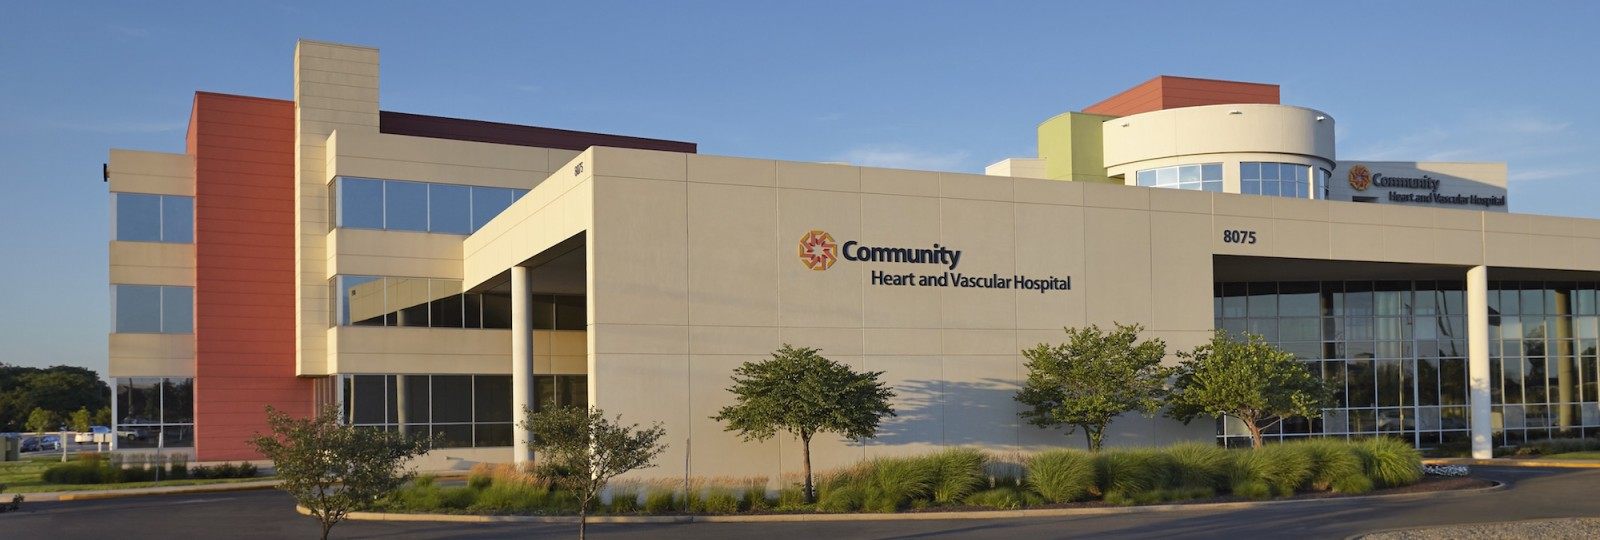 Community Heart and Vascular Hospital